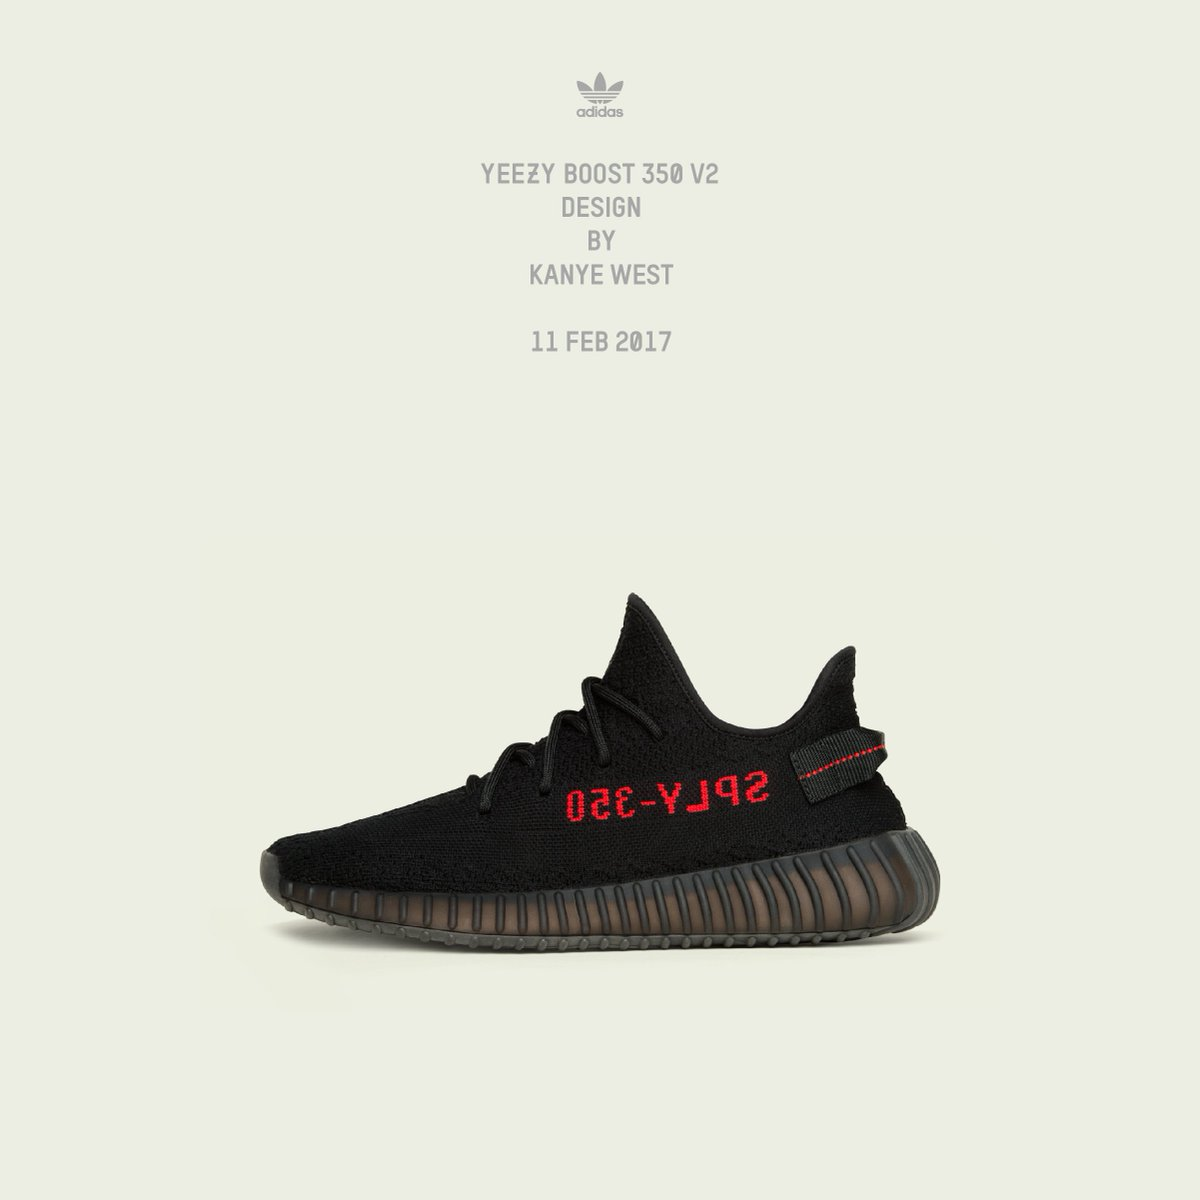 kicksusa on twitter yeezy boost 350 v2 in store raffle closes today at 5pm store list here https t.c